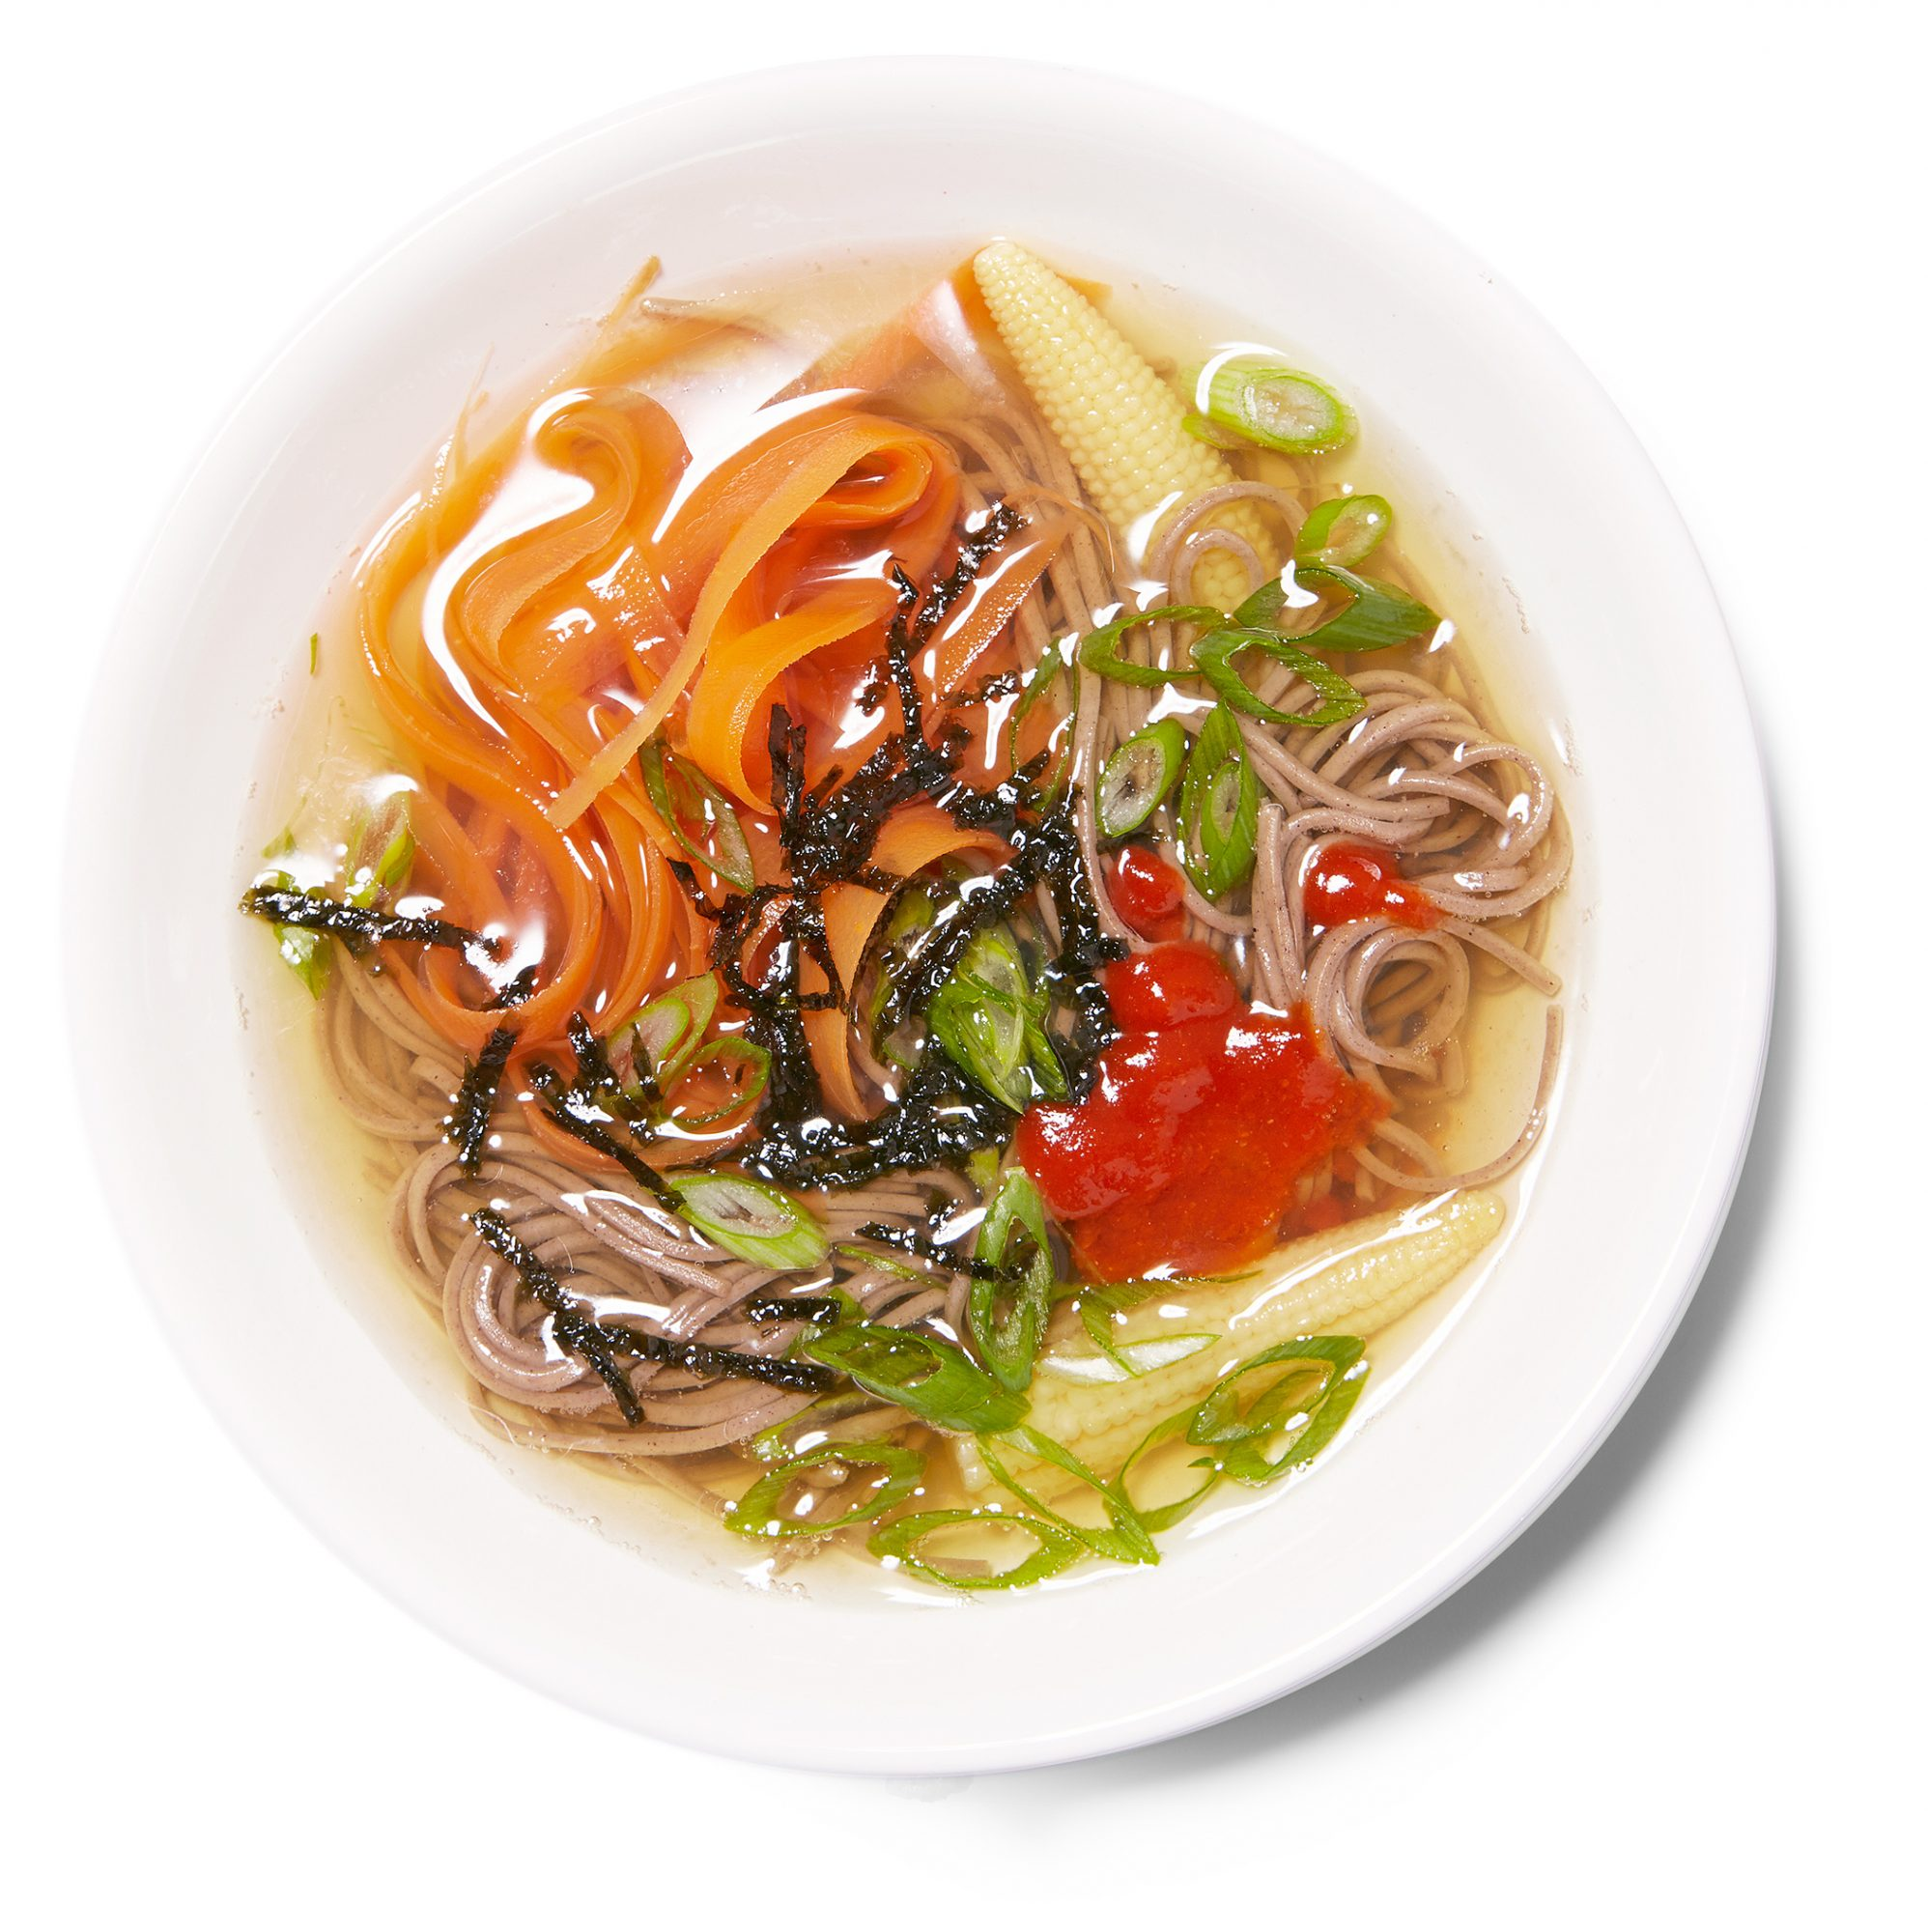 soba noodles in green tea broth